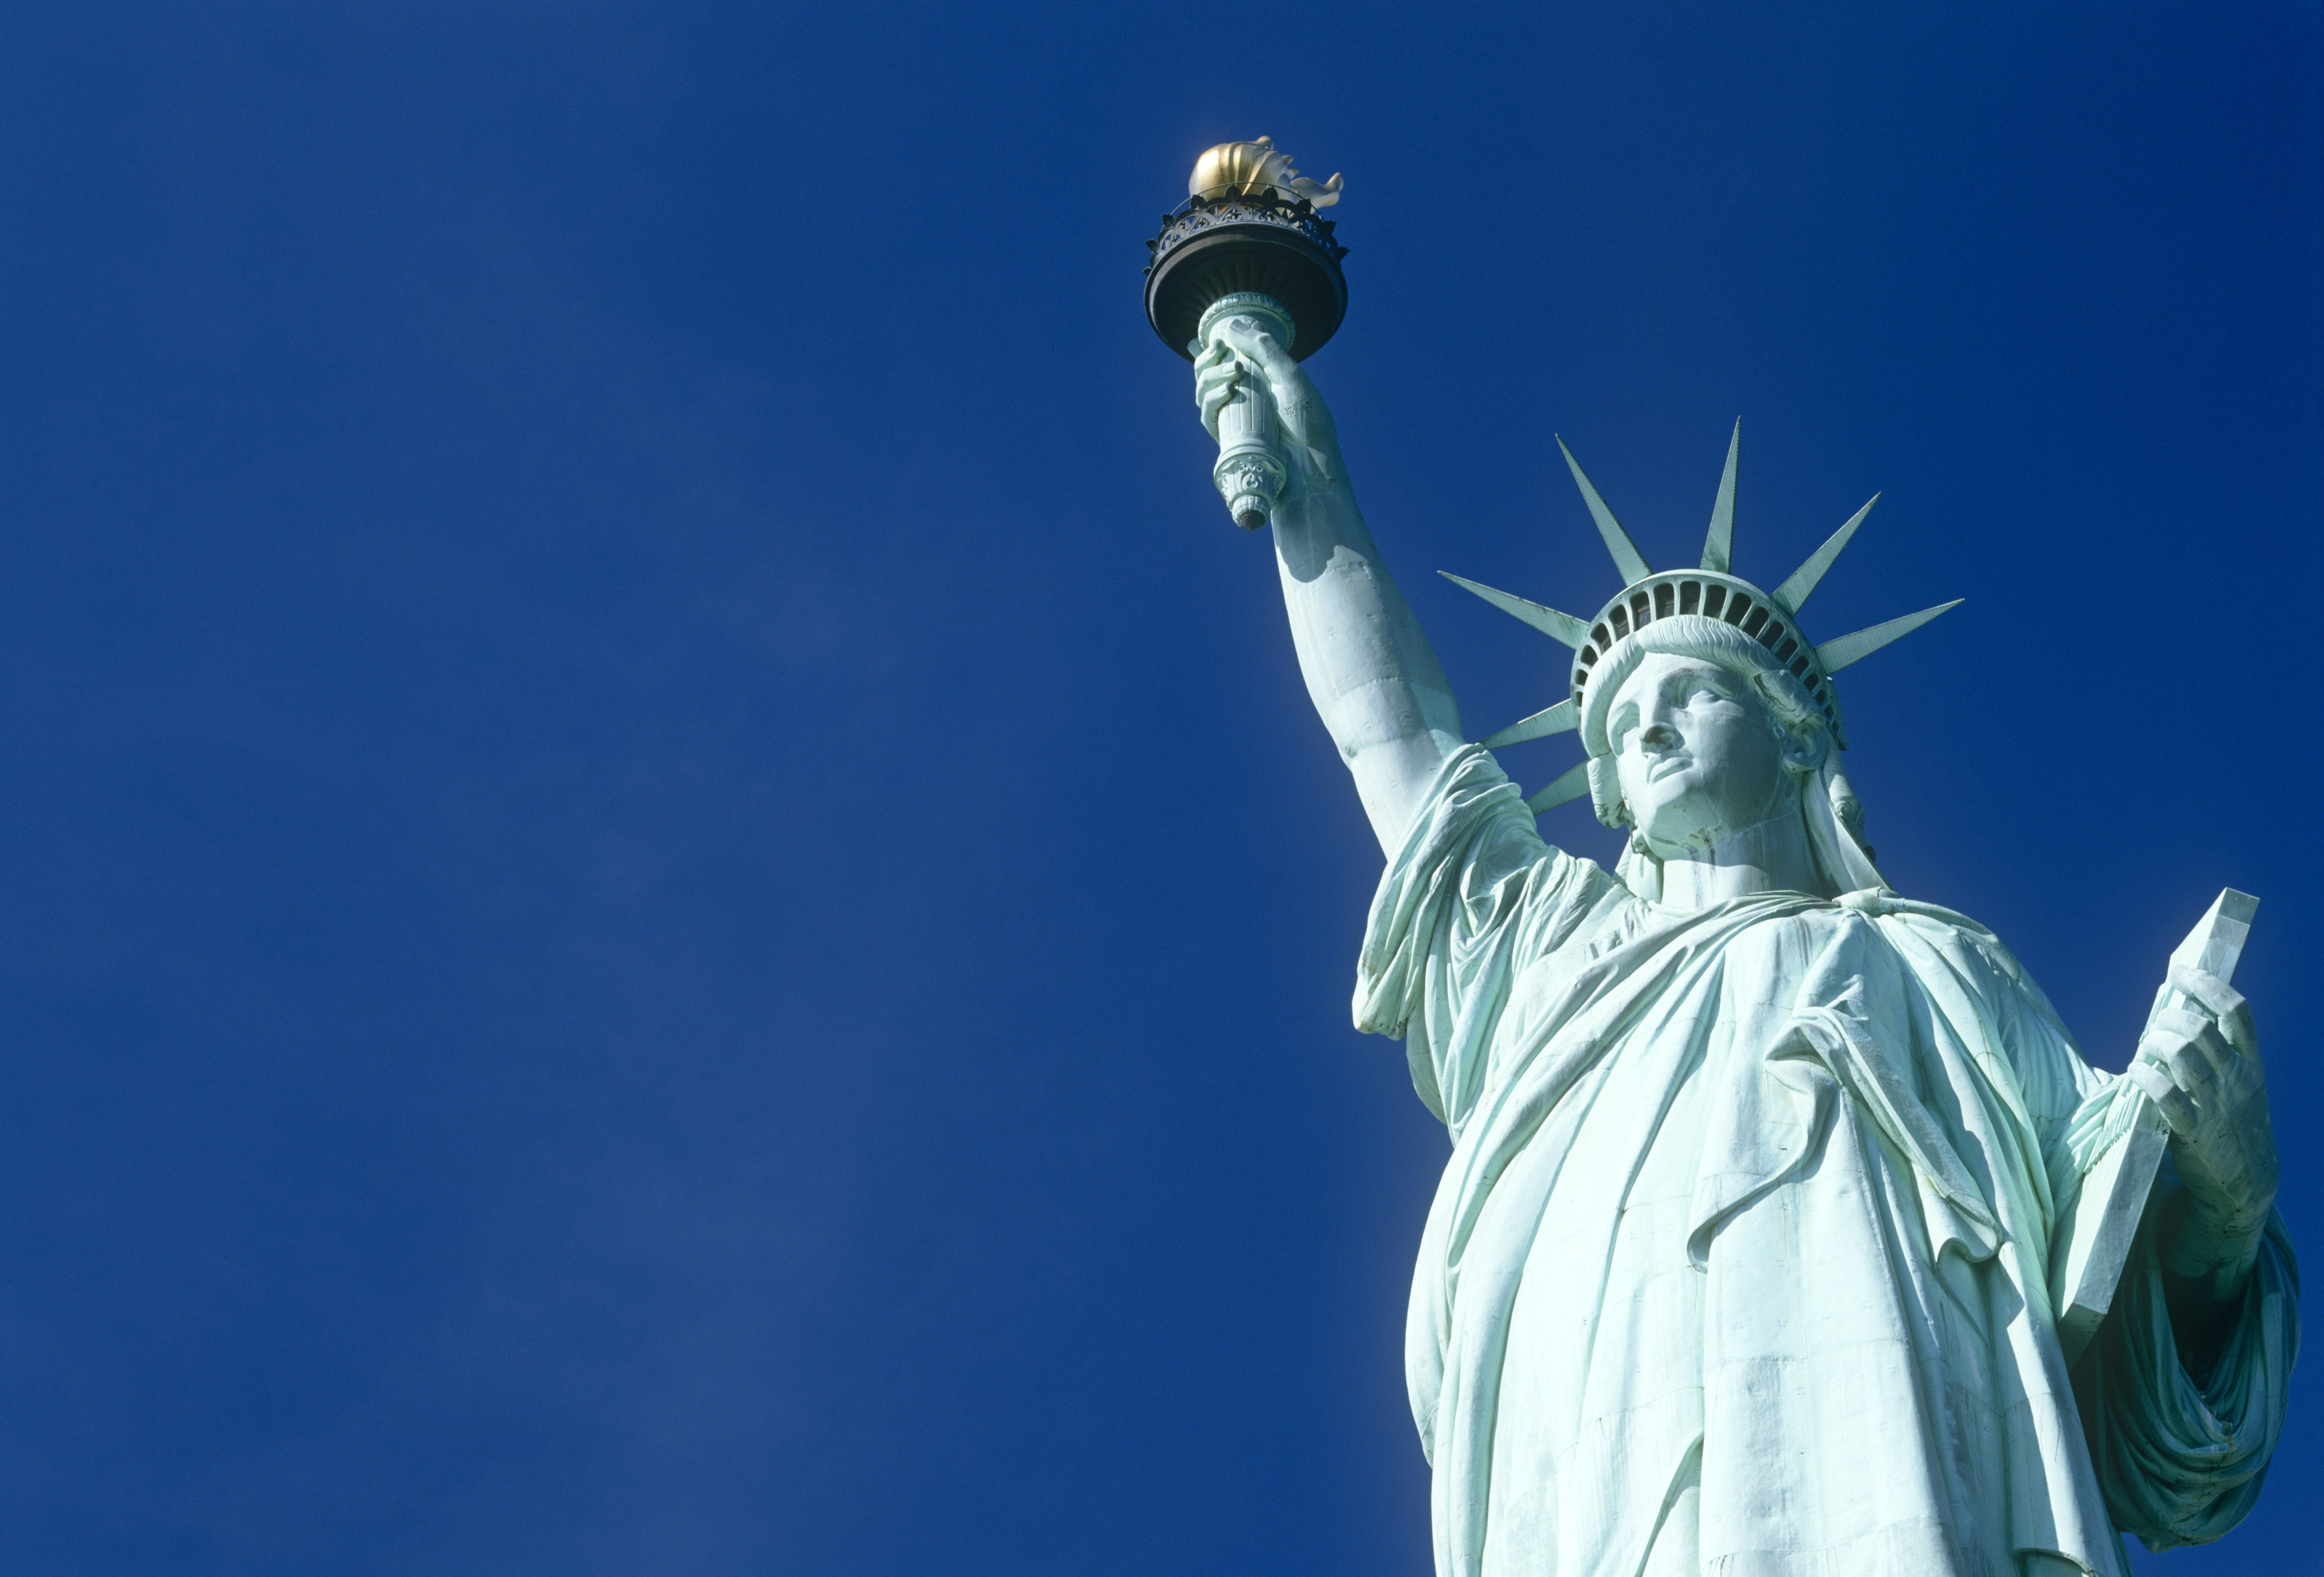 Statue of Liberty in New York City, USA - Lonely Planet